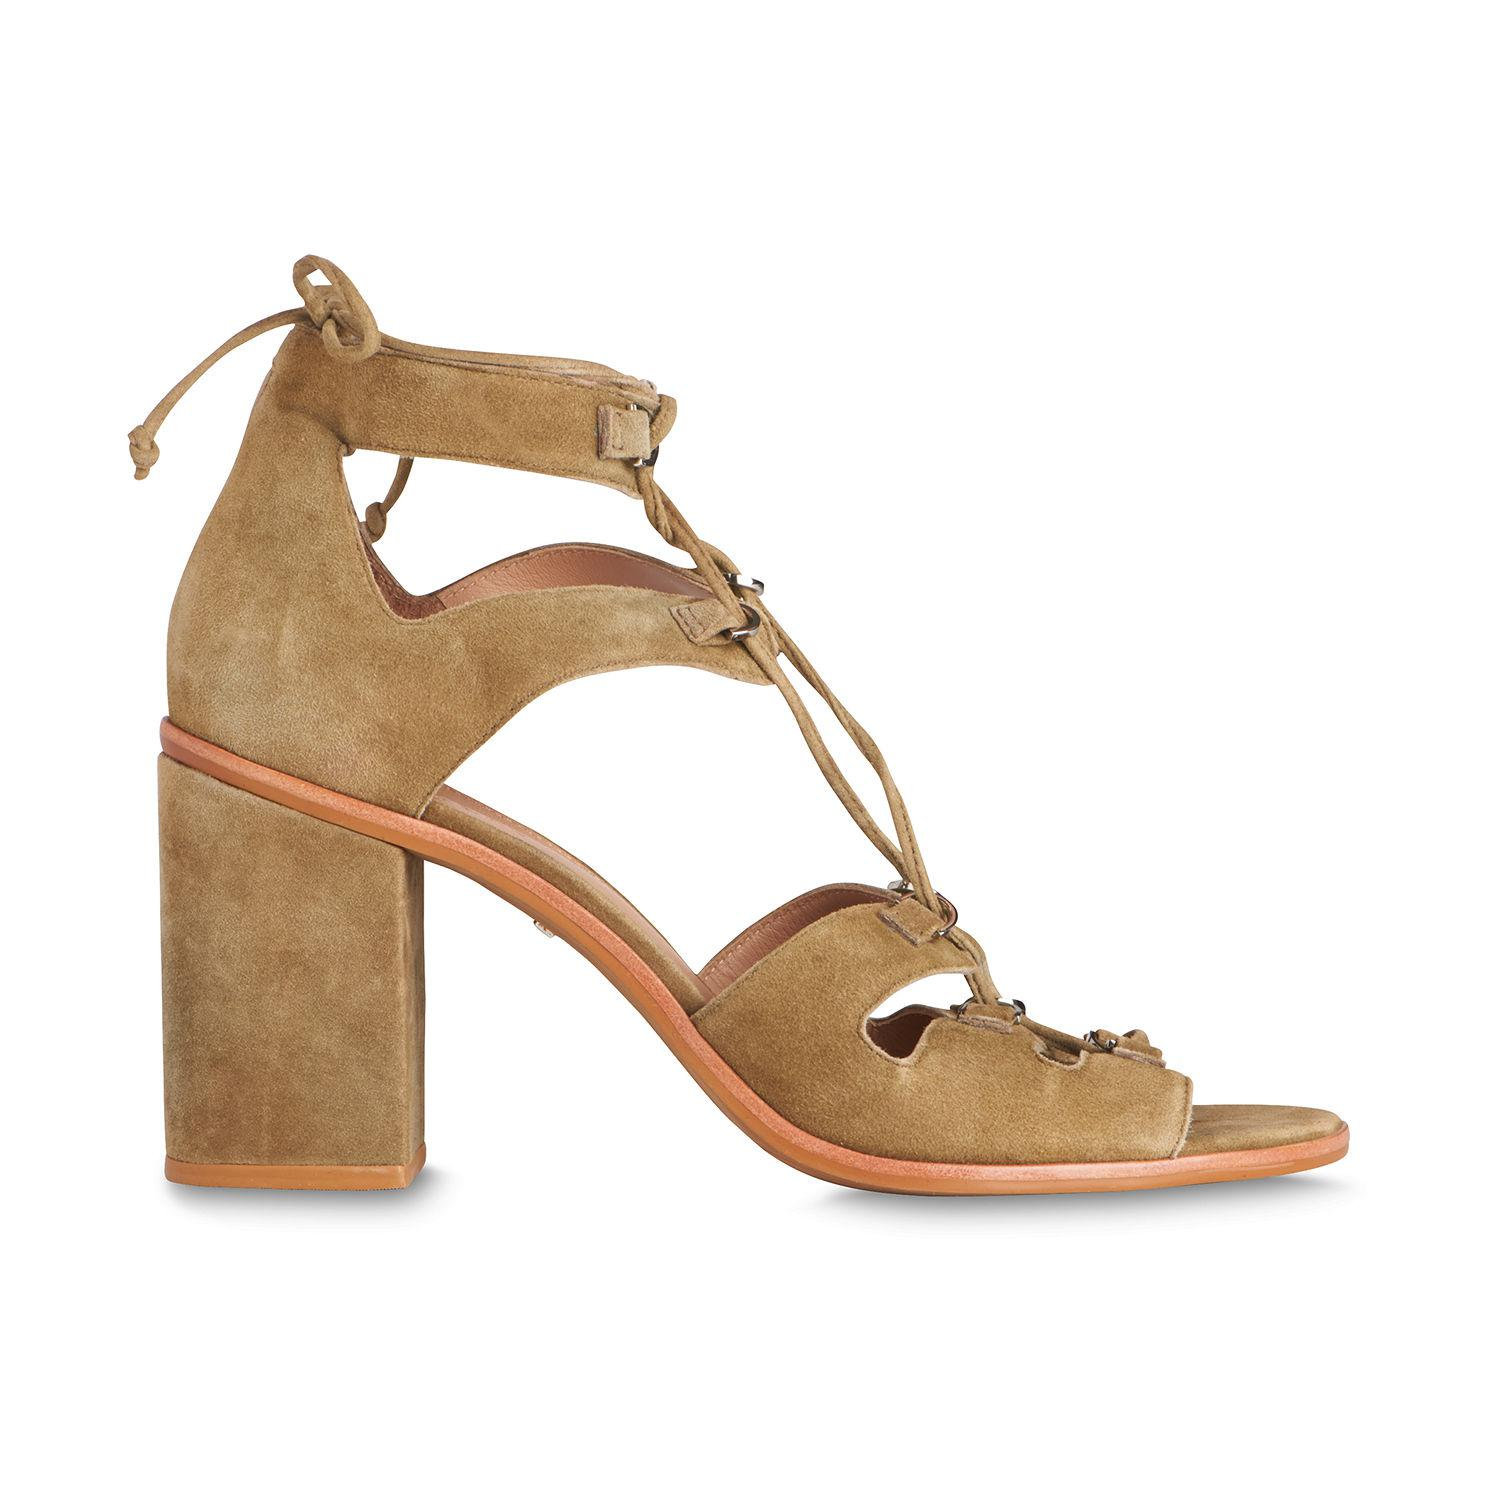 312b999bcff Whistles. Women s Novara D-ring High Sandal